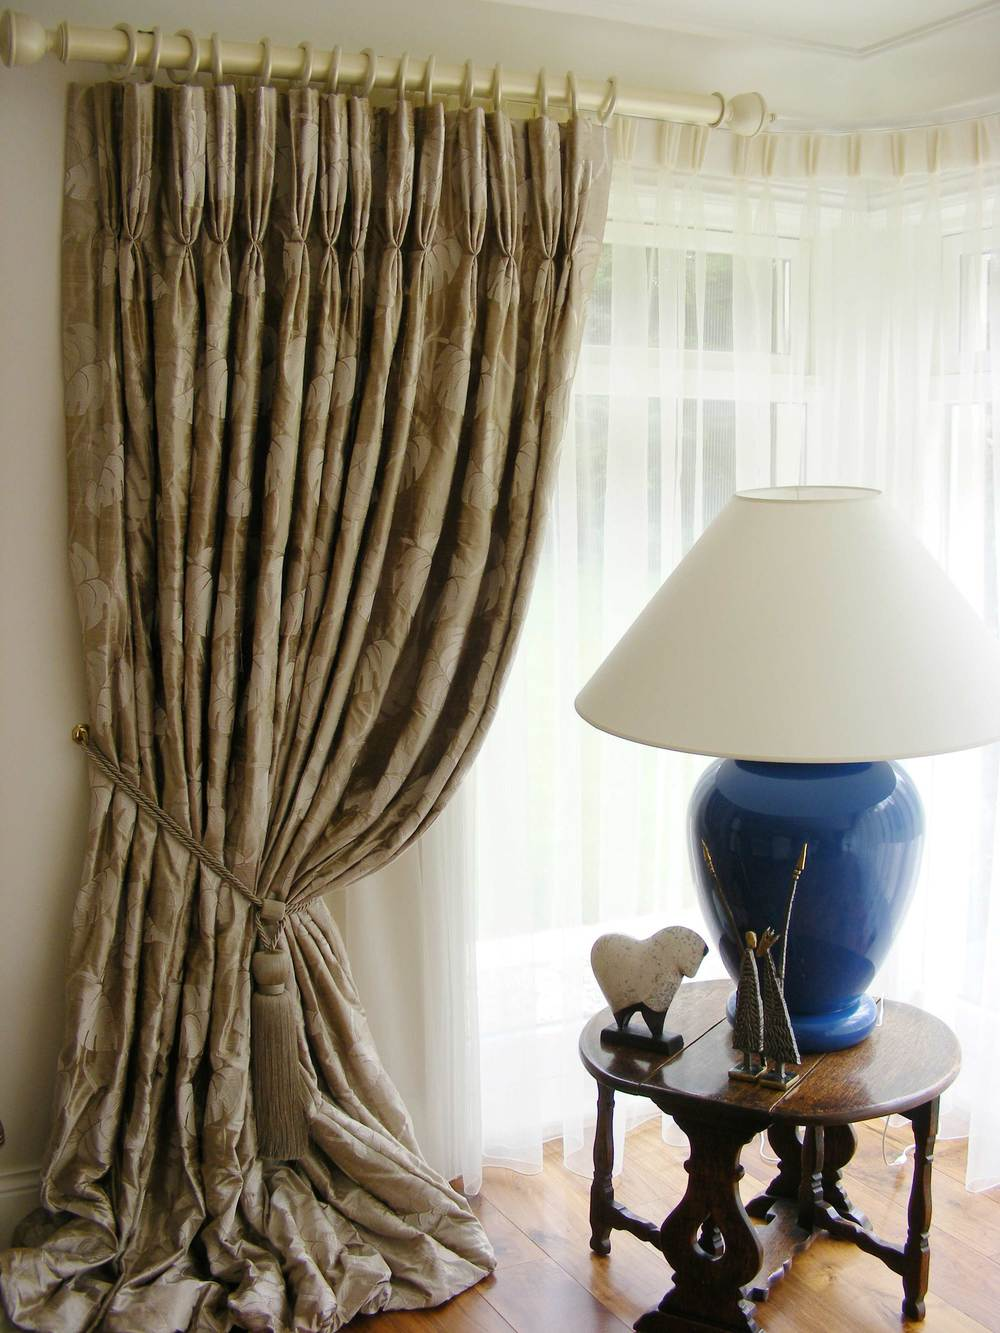 Luxurious Silk Curtain with french pleats hung from ornate pole